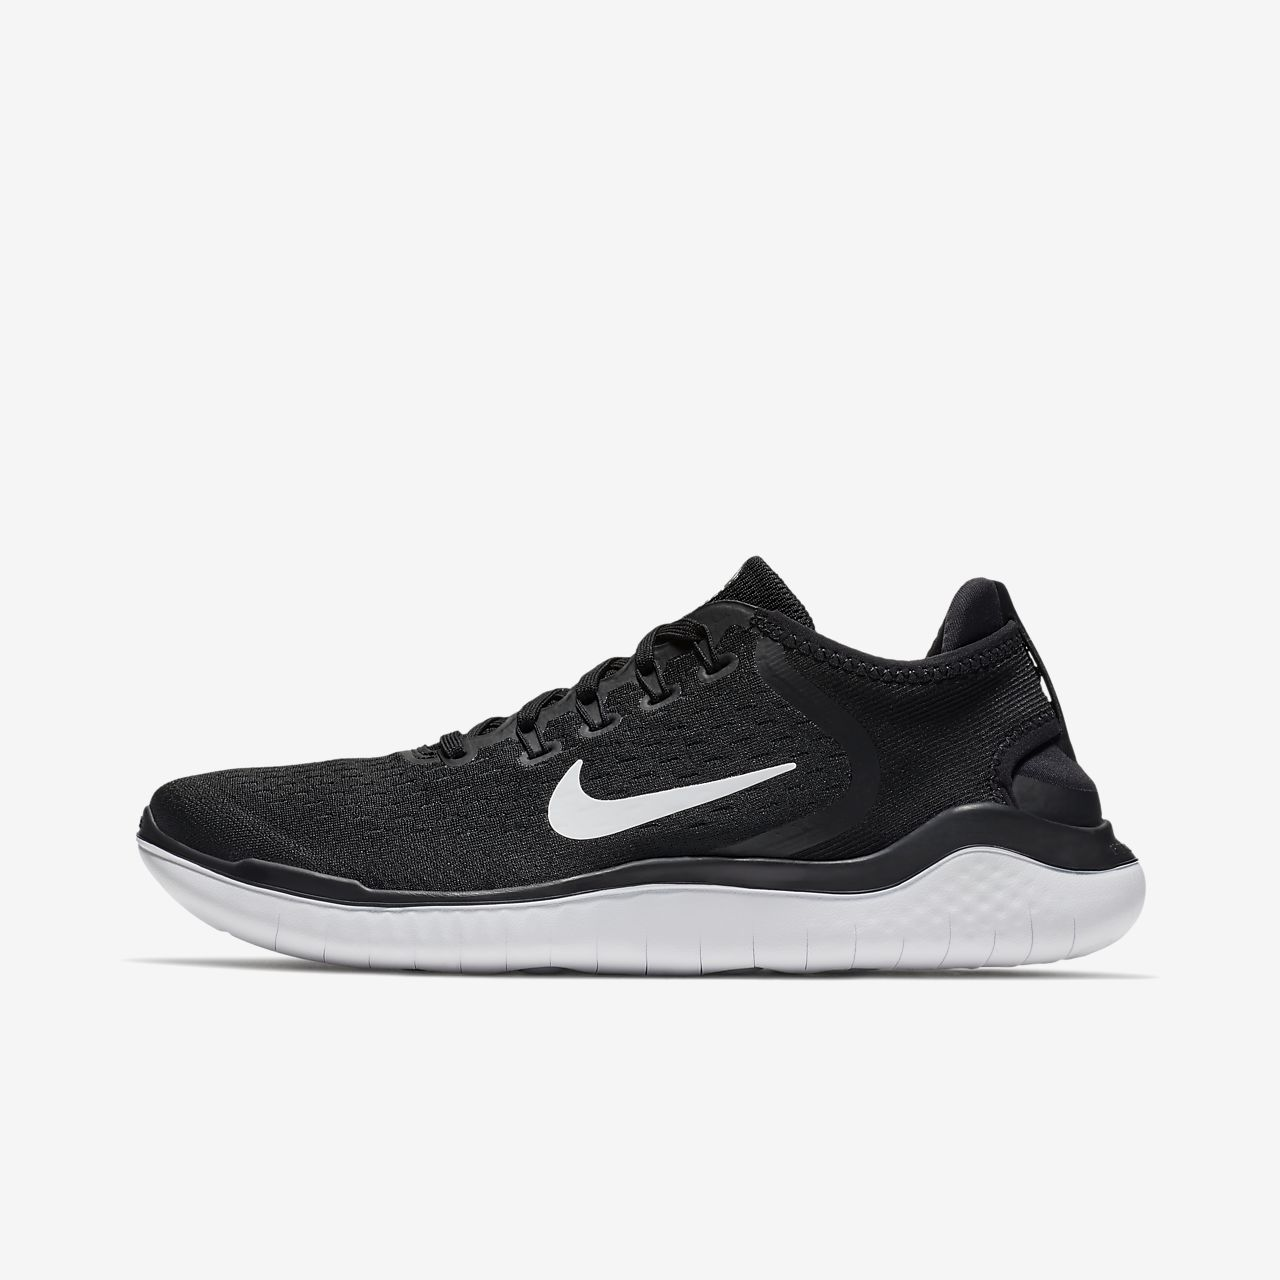 info for e5f28 7f298 Men s Running Shoe. Nike Free RN 2018